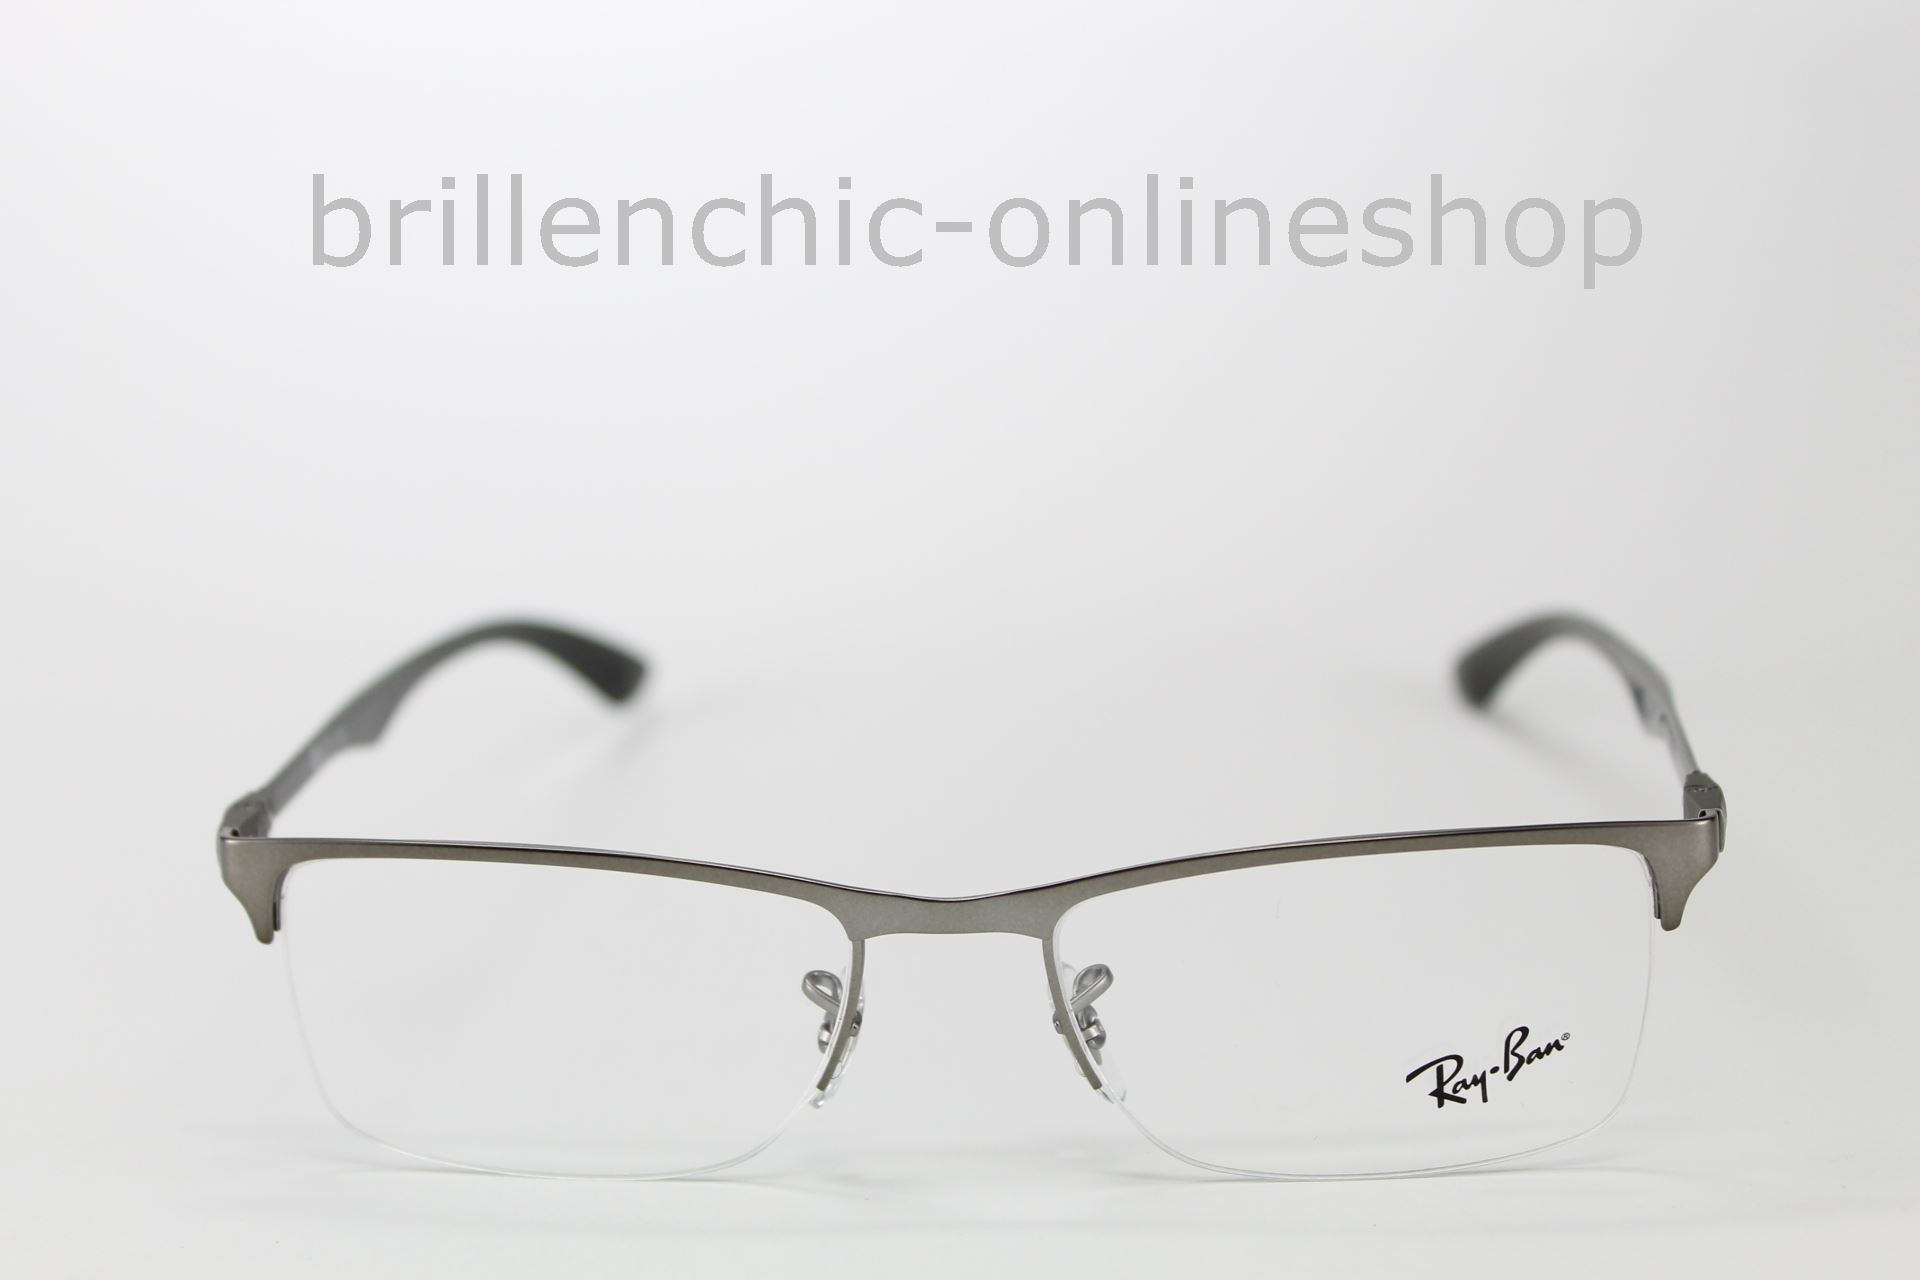 a86ab6564f Brillenchic-onlineshop in Berlin - Ray Ban RB 8413 2620 CARBON